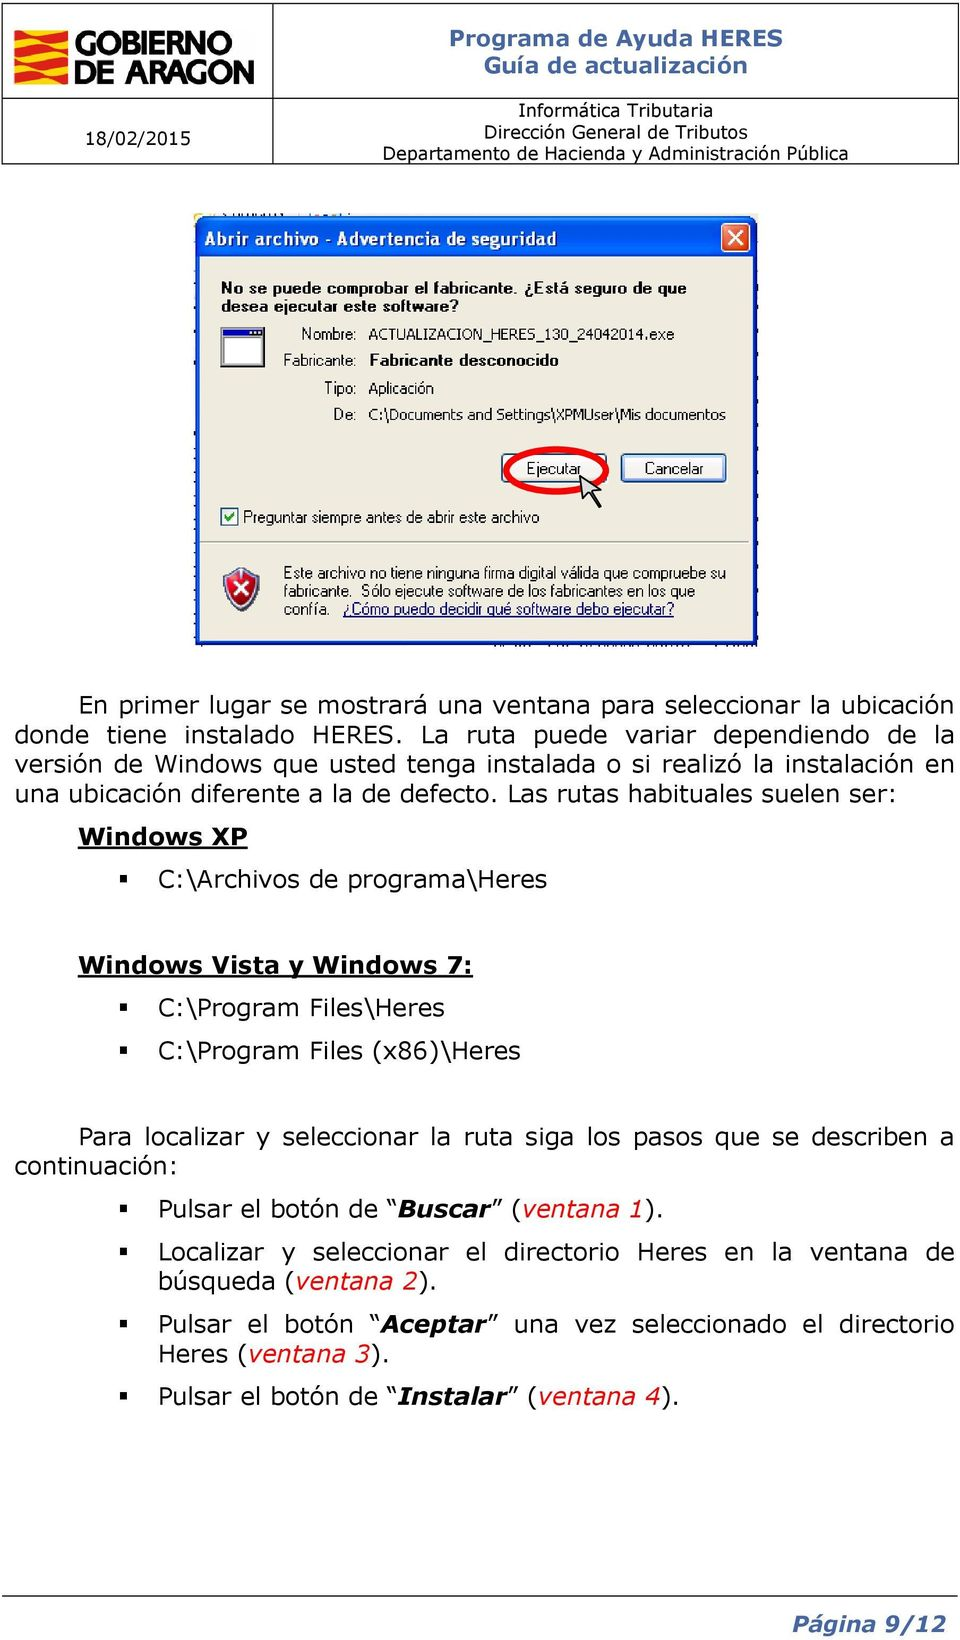 Las rutas habituales suelen ser: Windows XP C:\Archivos de programa\heres Windows Vista y Windows 7: C:\Program Files\Heres C:\Program Files (x86)\heres Para localizar y seleccionar la